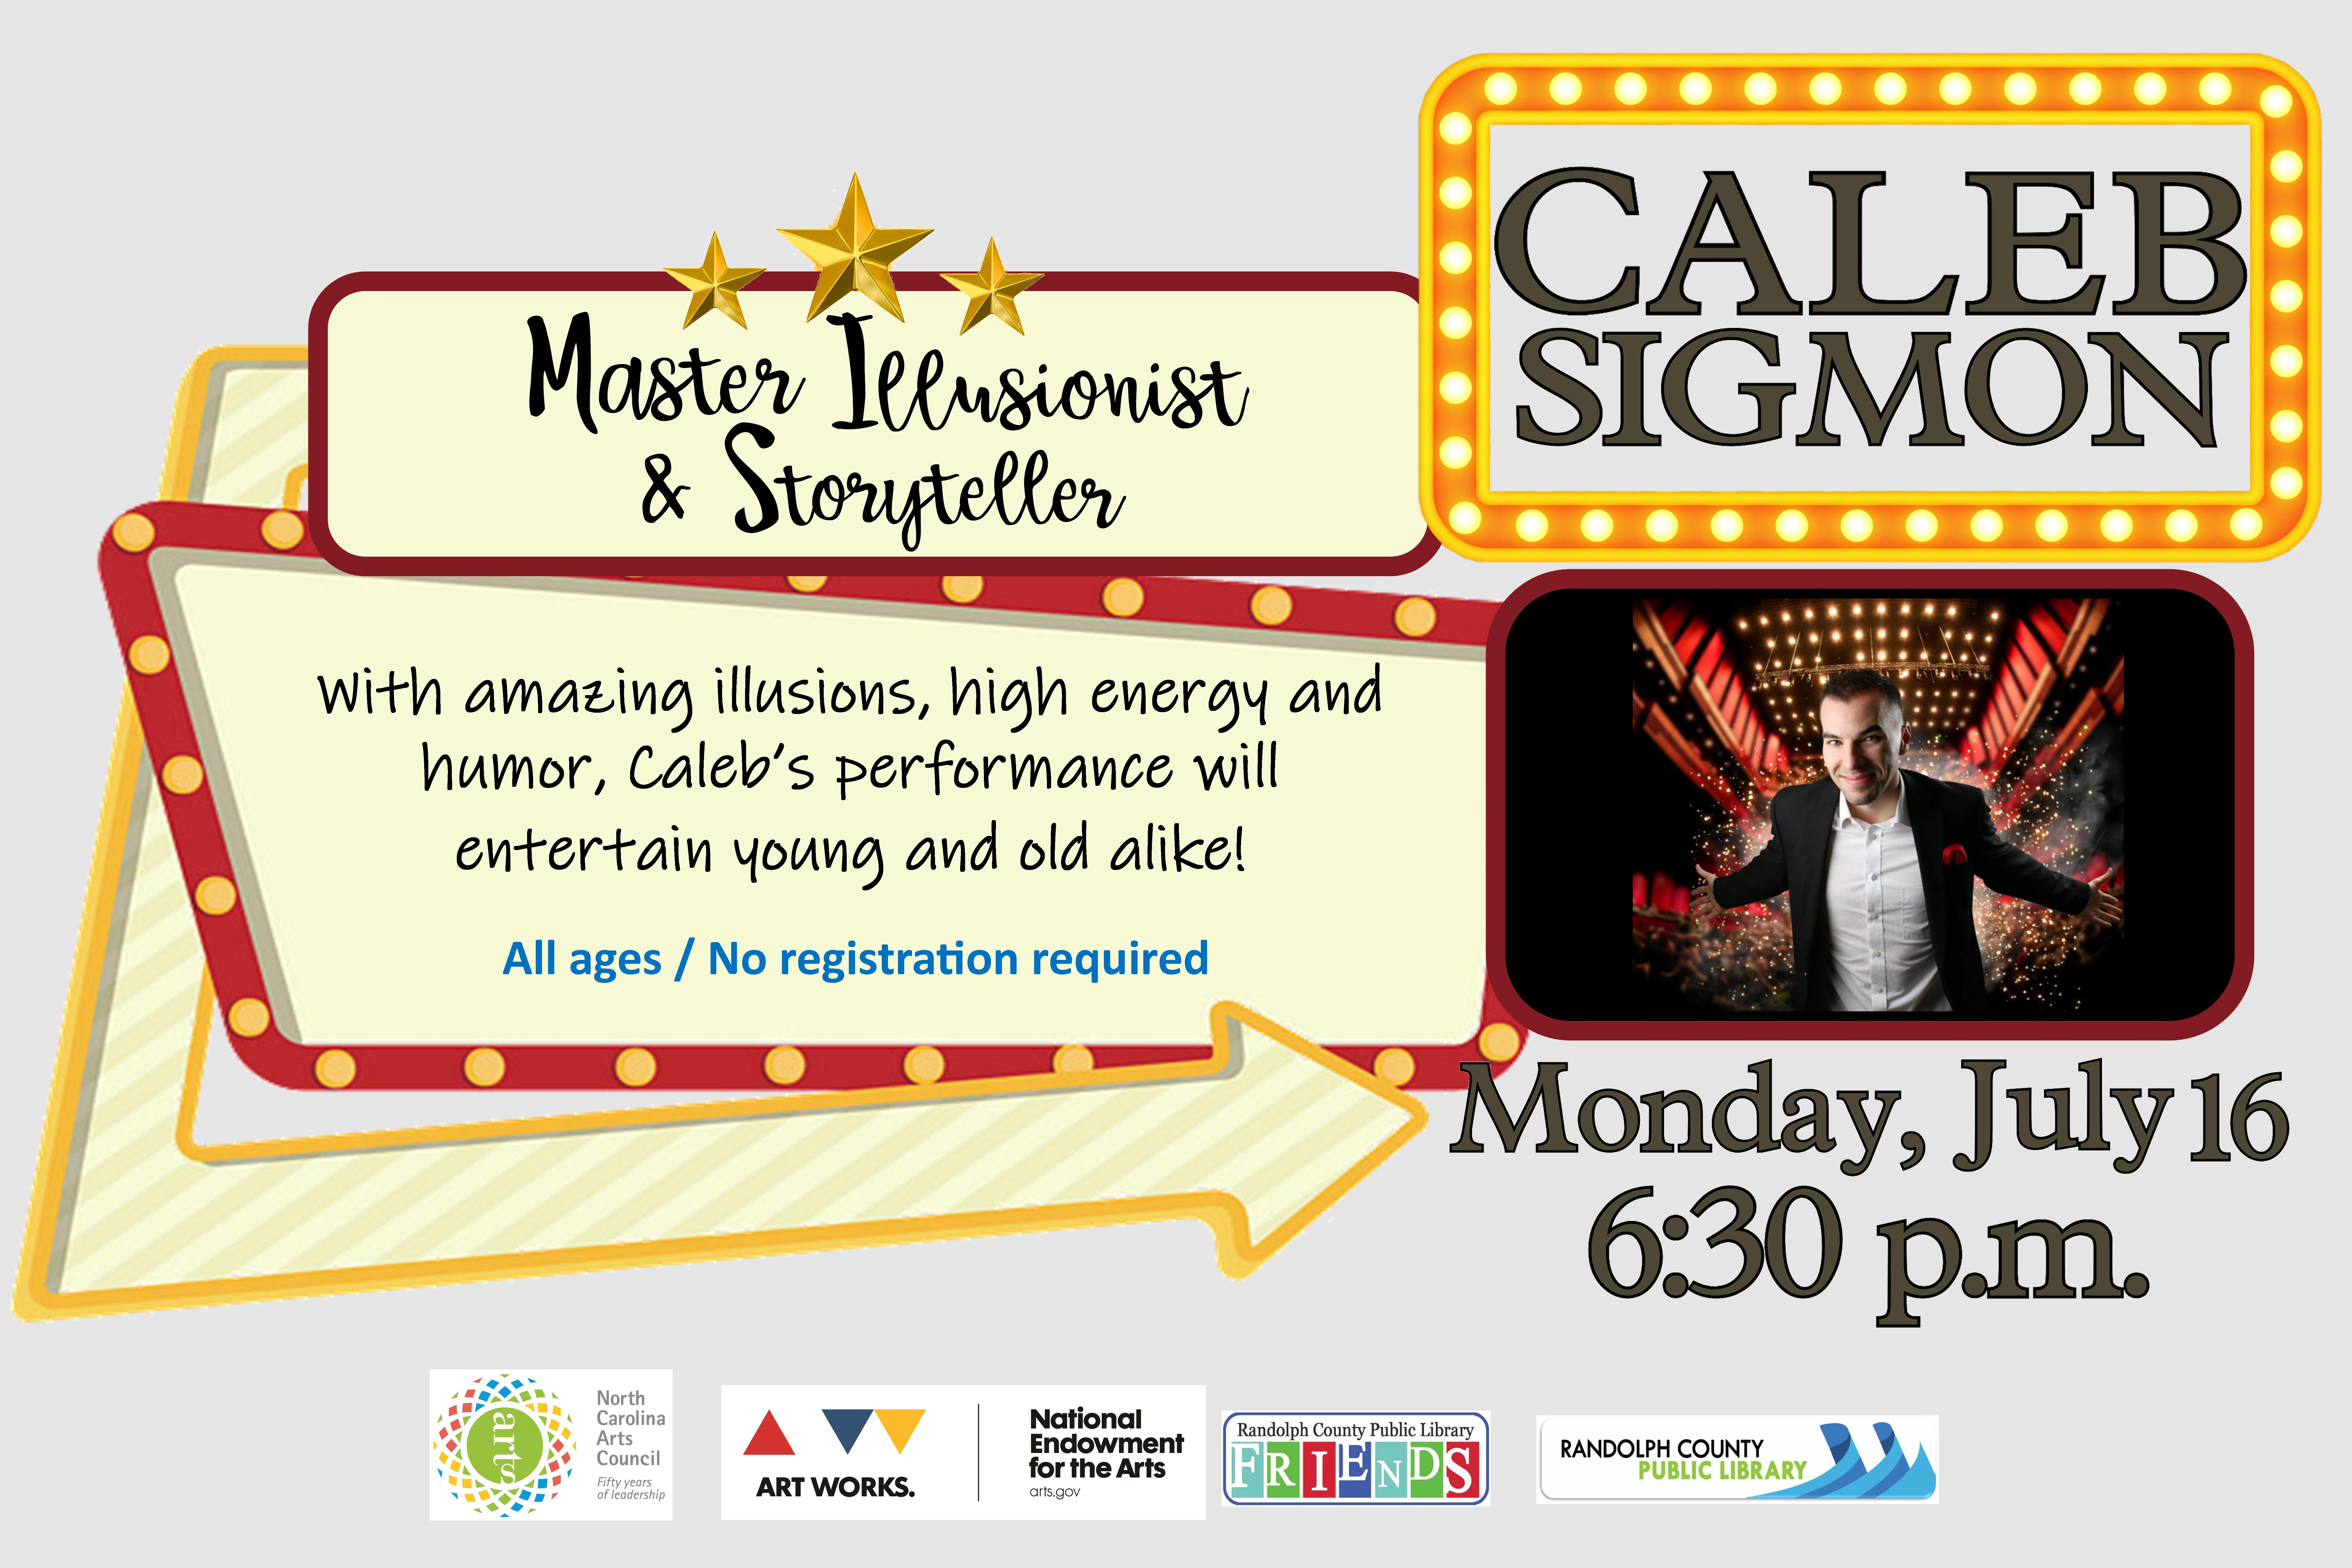 Come master illusionist and storyteller Caleb Sigmonat the Asheboro Library on July 16 28th!